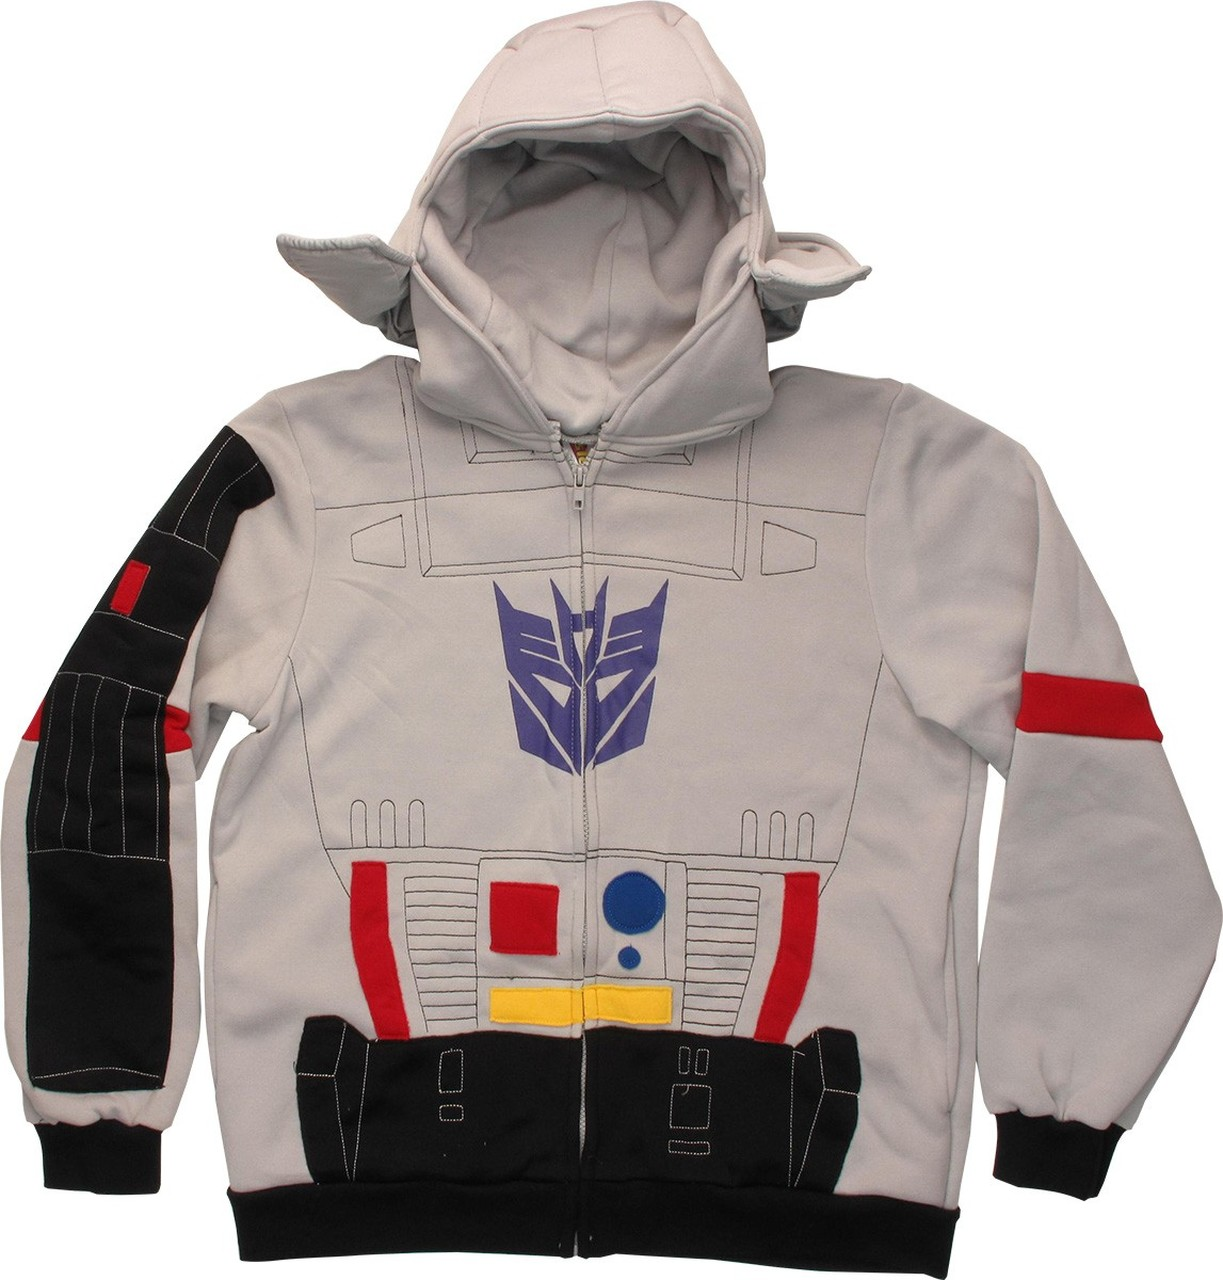 Transformers Megatron Costume Hoodie Gray Officially Licensed Large